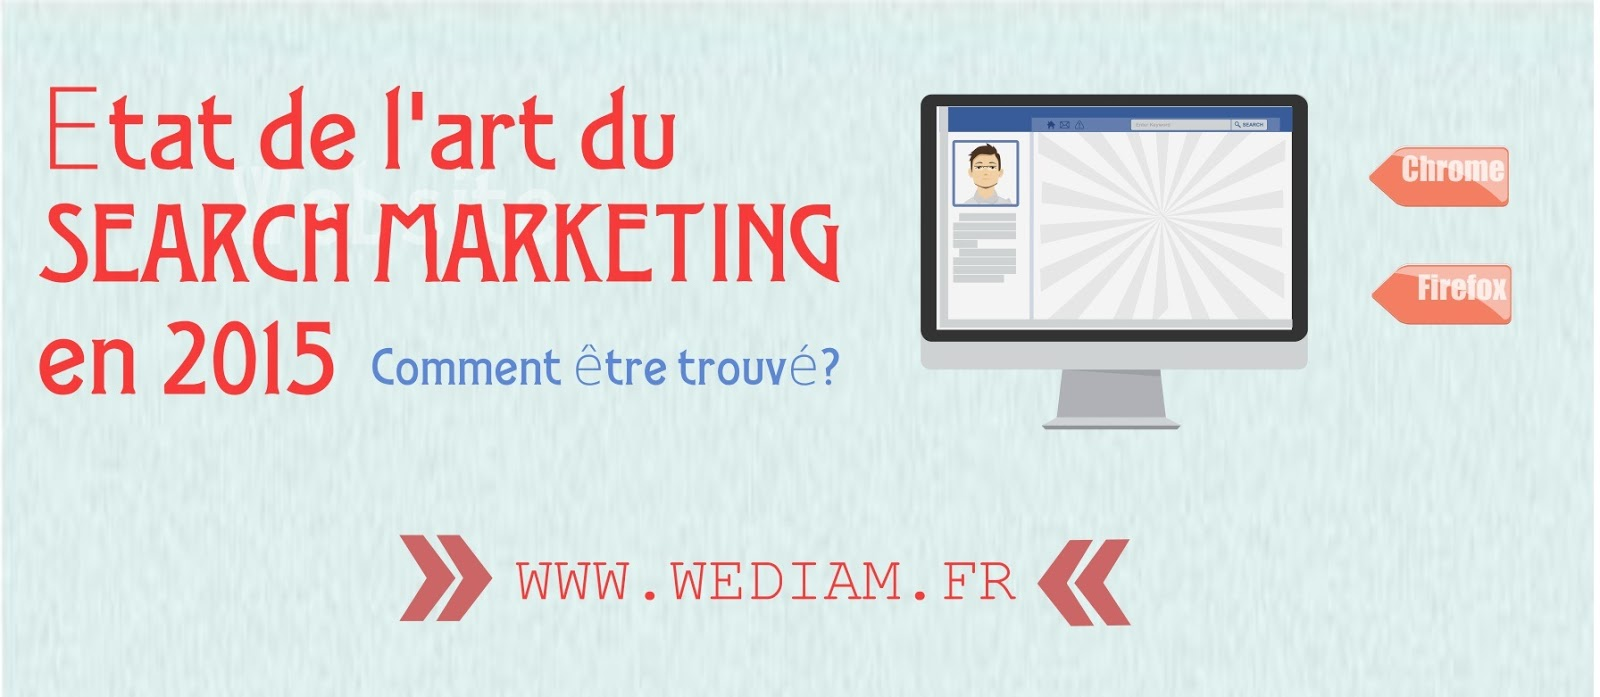 Etat de l'art du search marketing en 2015 - seo wediam